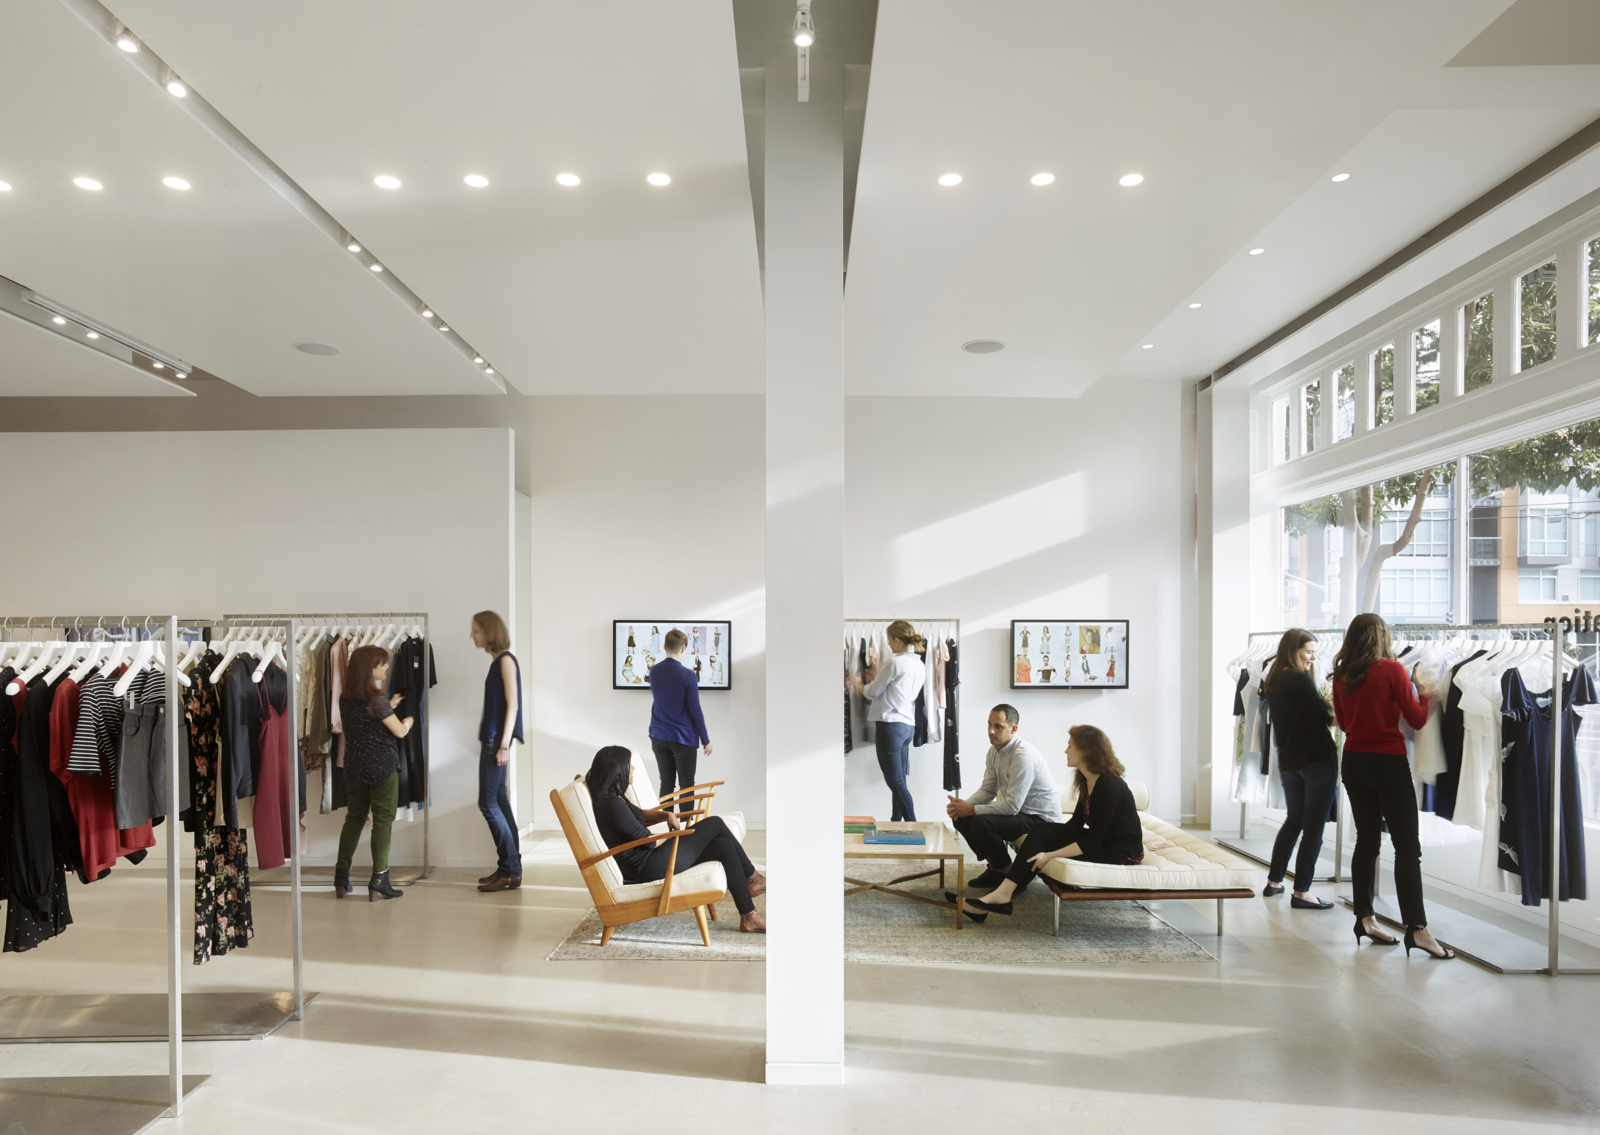 Photo 2 of 7 in Bohlin Cywinski Jackson Designs a Tech-Forward Retail Experience For Reformation